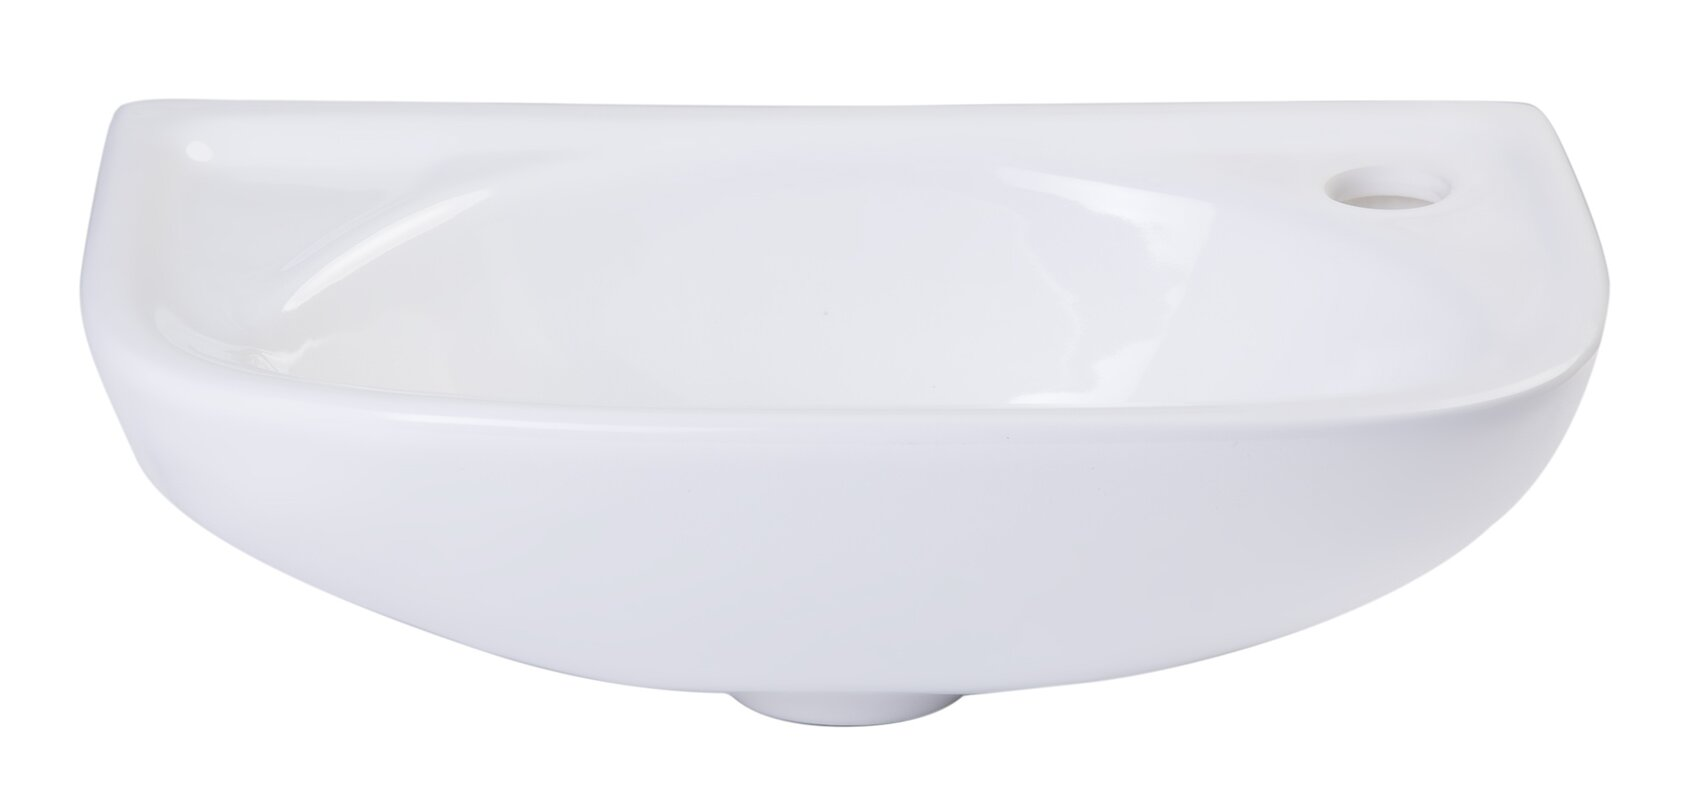 Small wall mounted bathroom sinks - Small 16 Wall Mount Bathroom Sink